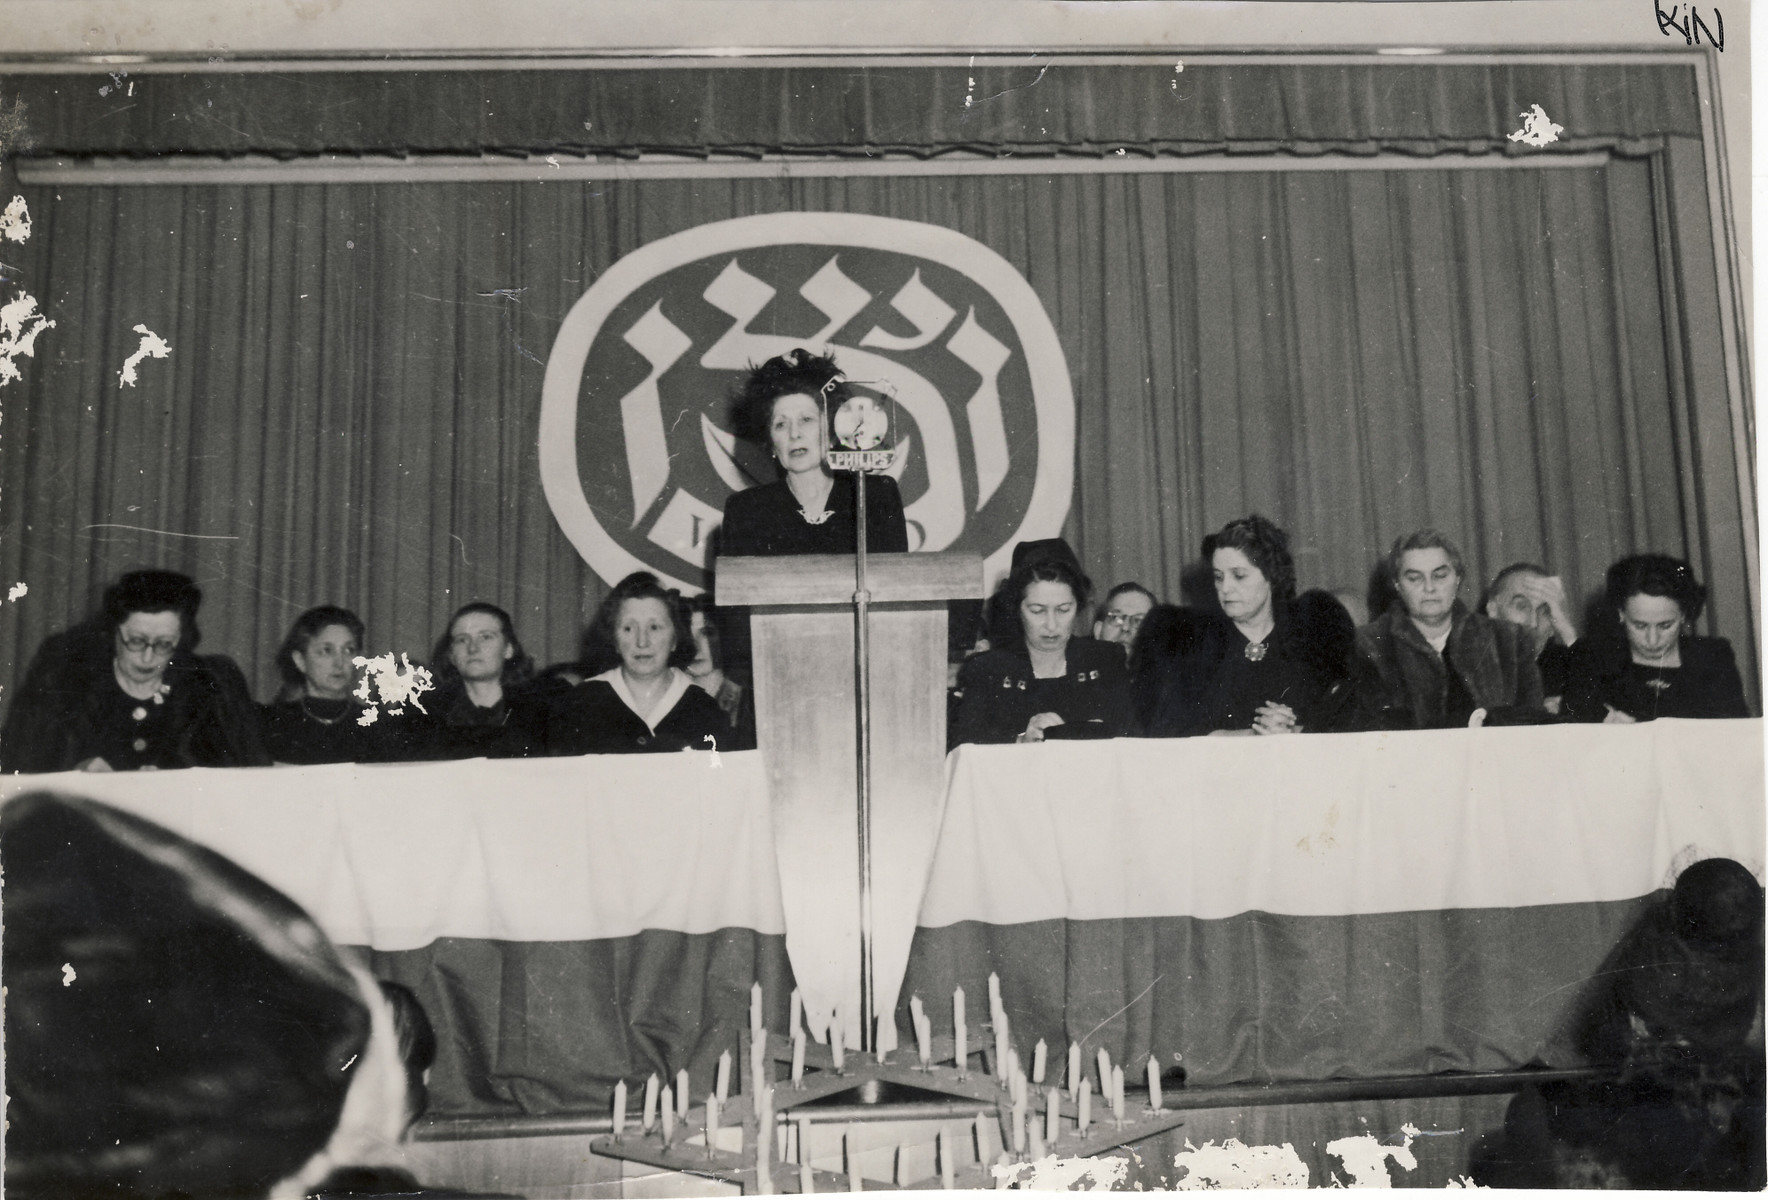 Zionist women gather in Basel Switzerland for the 11th international WIZO (Women's International Zionist Organization) conference, their first conference since the start of World War II.